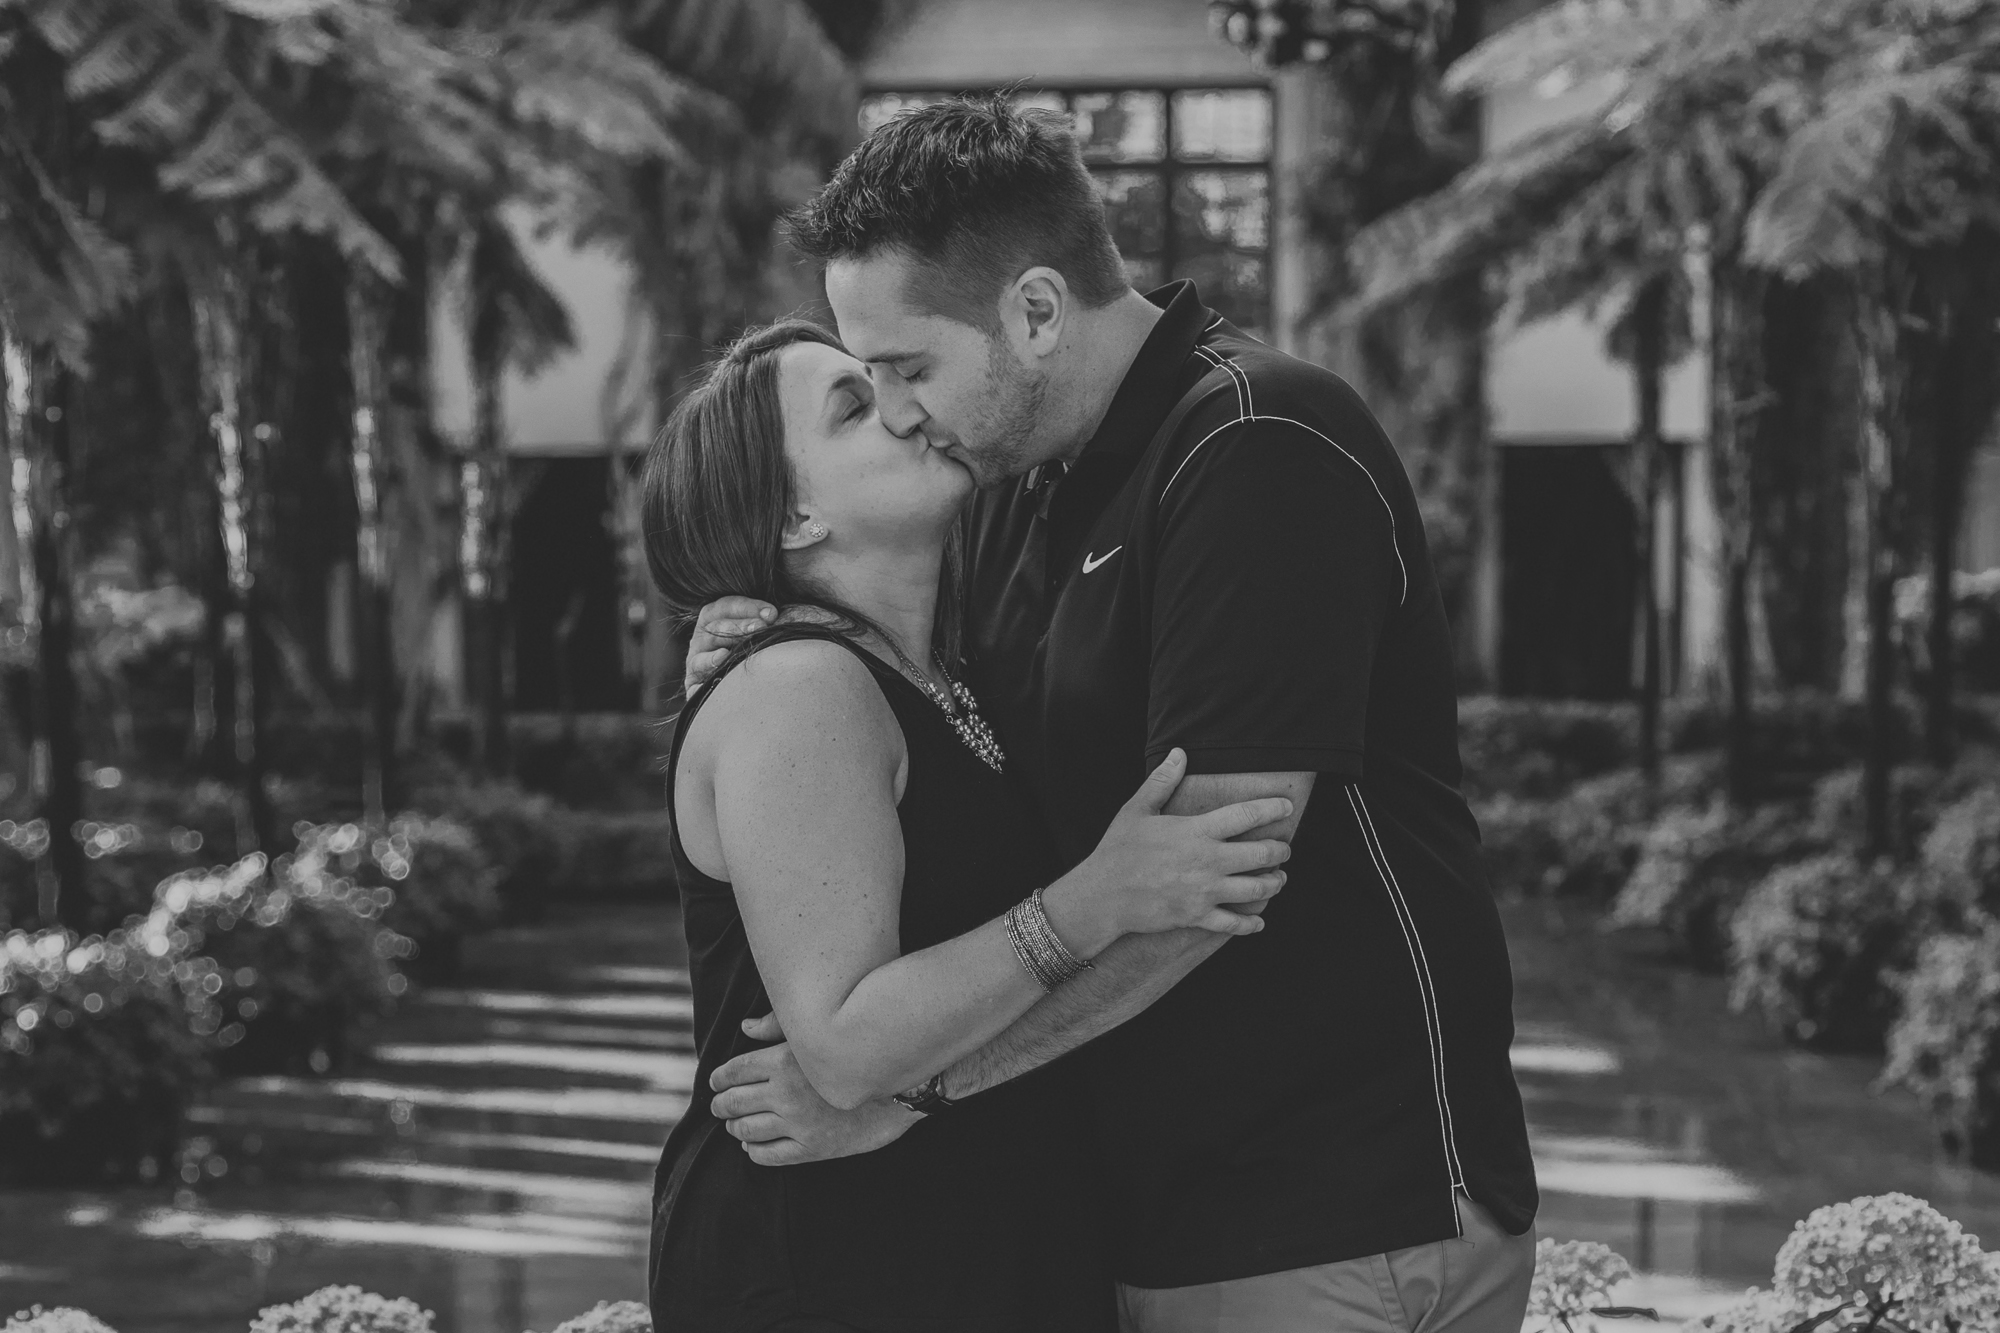 longwood-gardens-west-chester-couple-kiss-photography